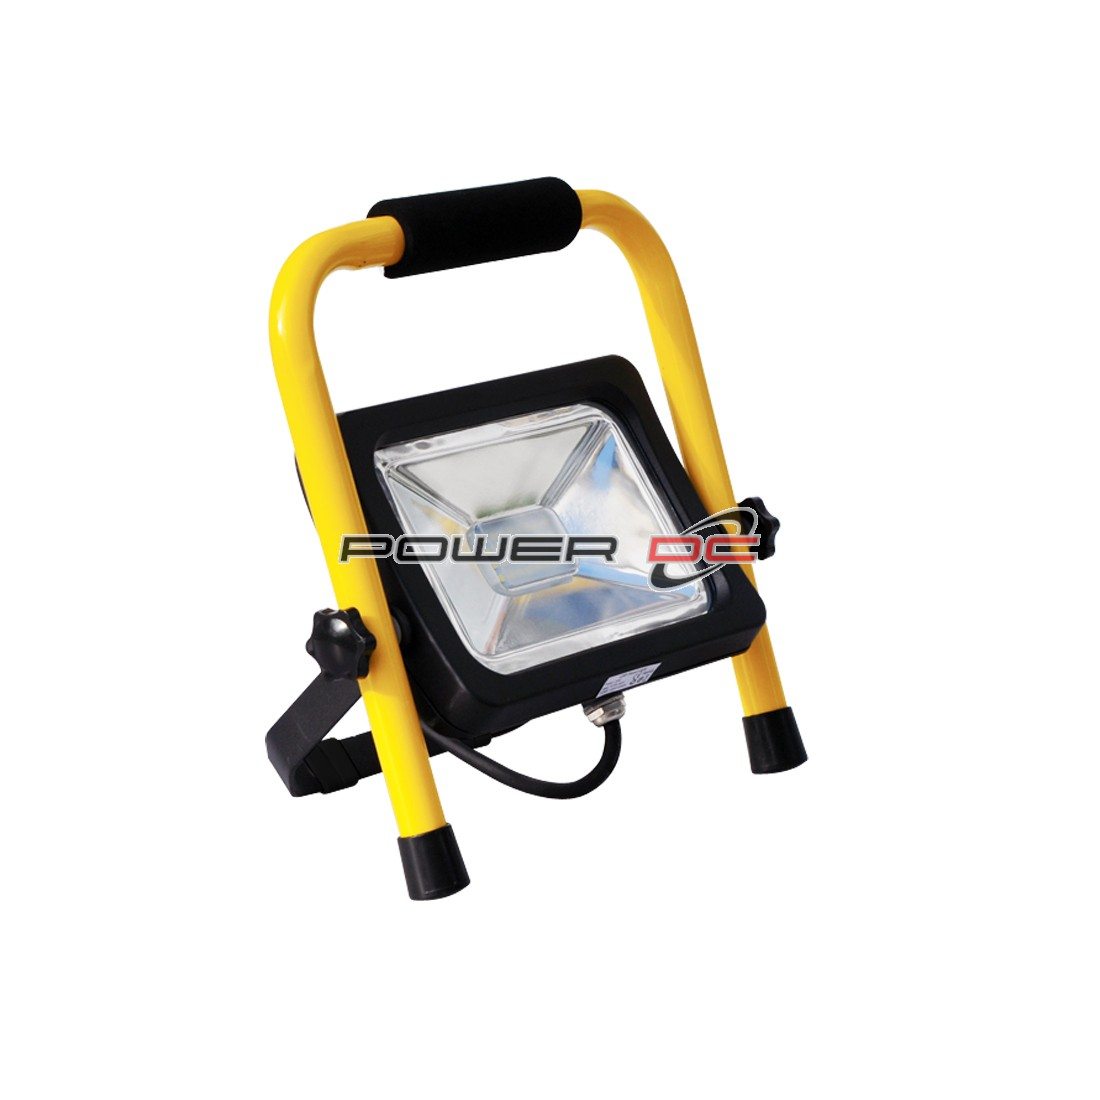 ULTRACHARGE LED FLOOD LIGHT 20WATT STAND - YELLOW